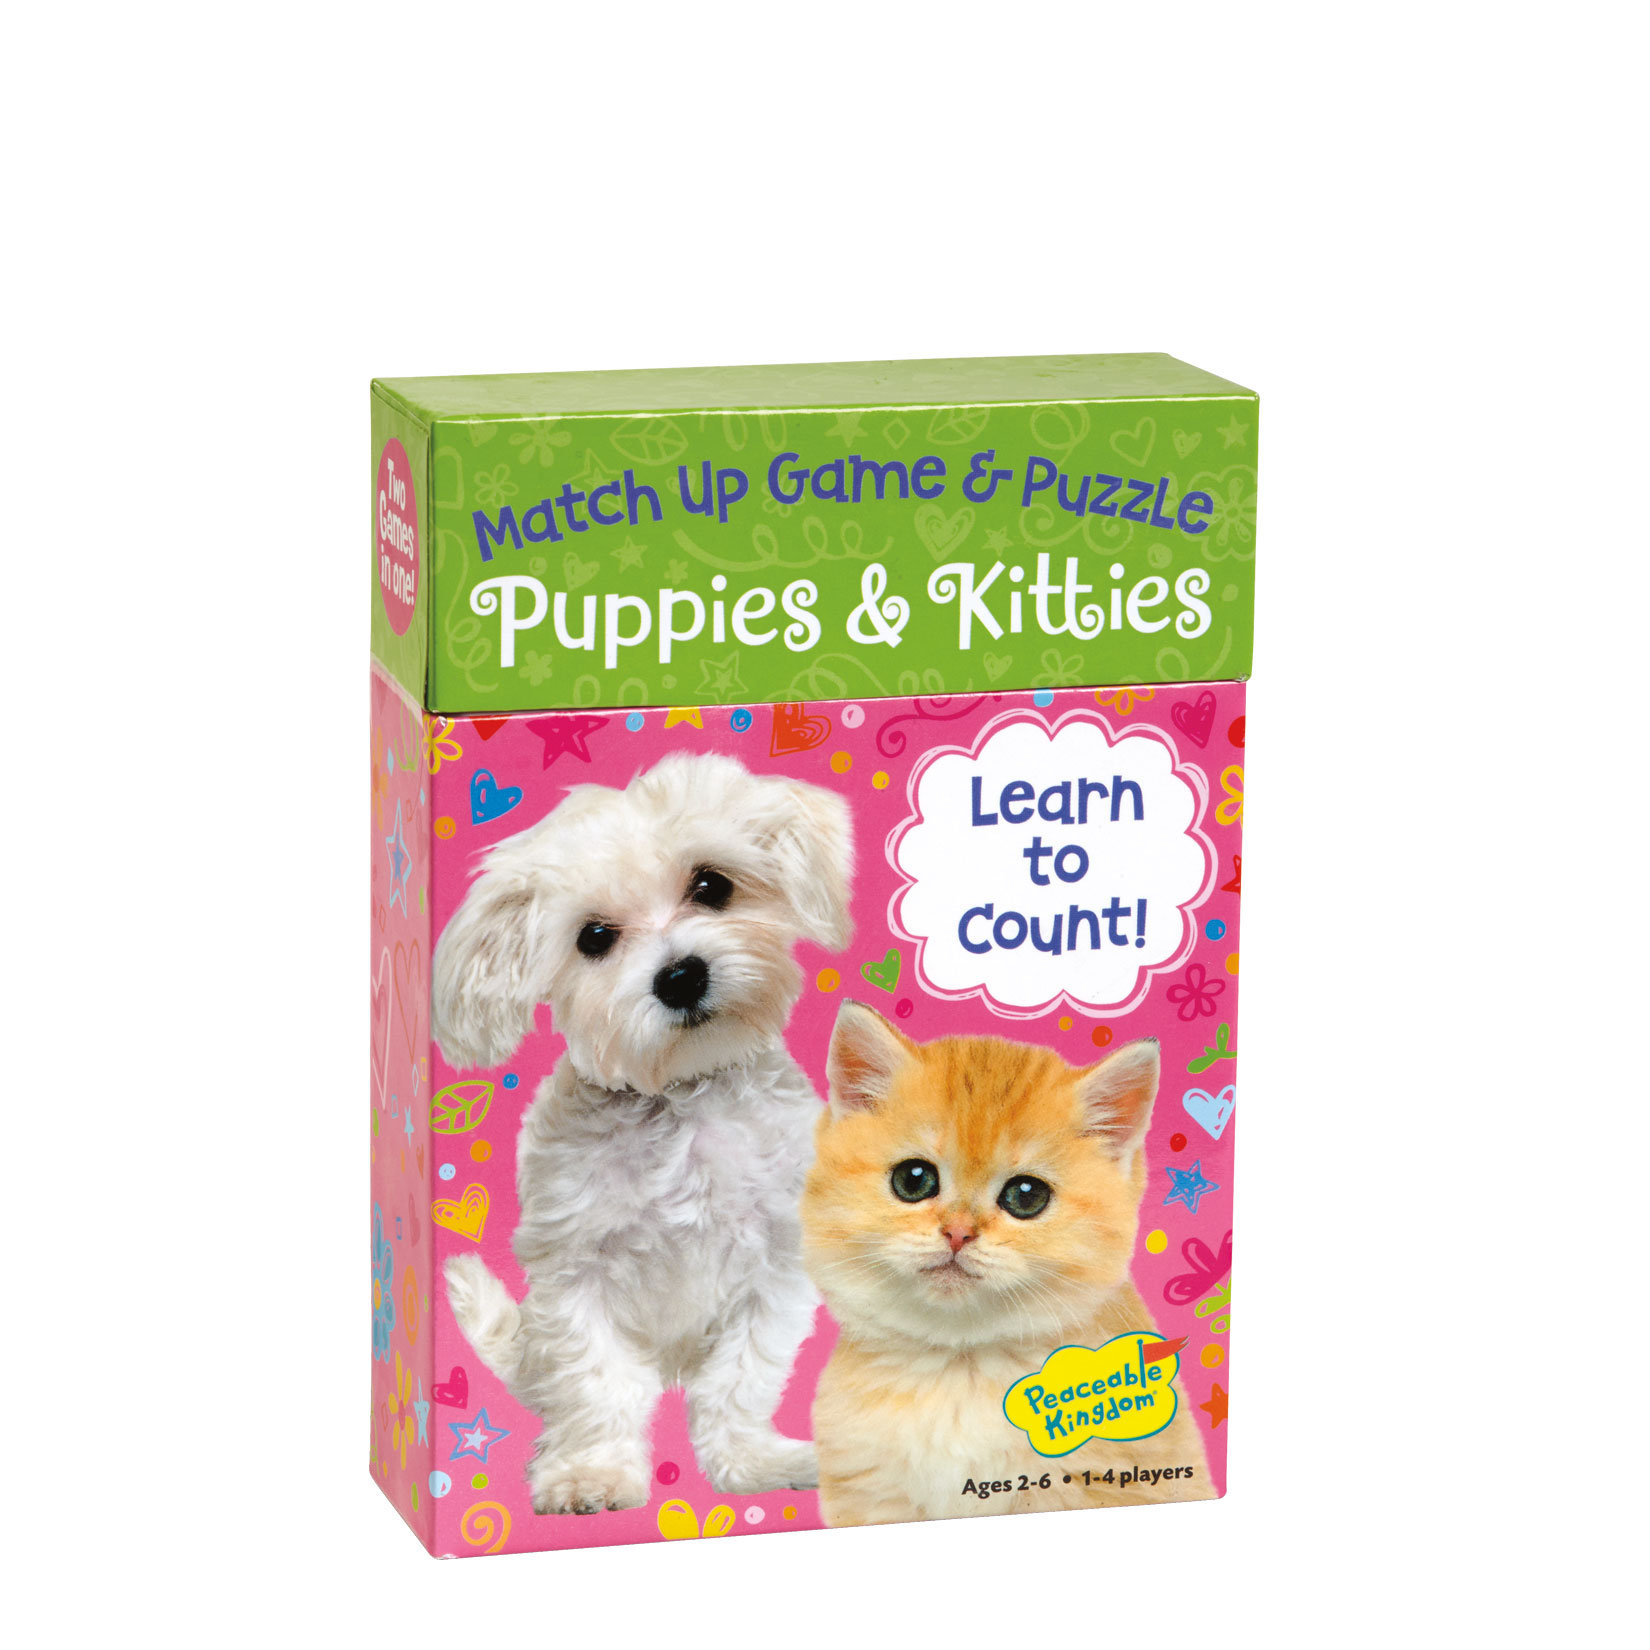 Match Up Game & Puzzle, Learn to count  Puppies & Kitties by Peaceable Kingdom